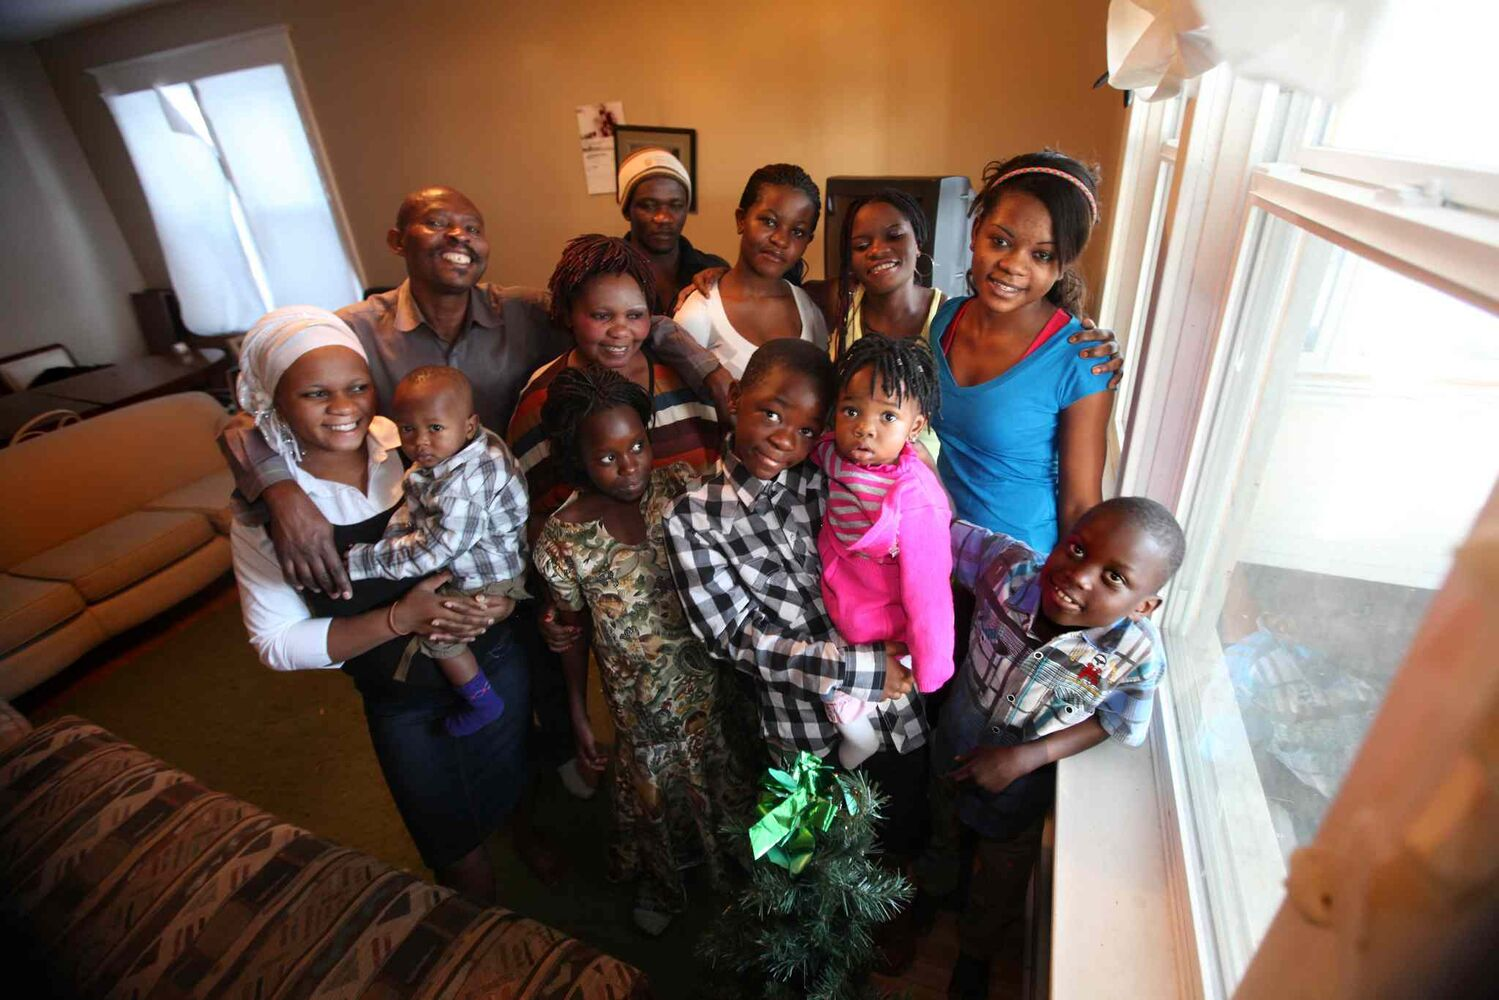 A family of 12 Congolese refugees who arrived in Winnipeg, Dec. 10, 2013. ( Ruth Bonneville / Winnipeg Free Press)